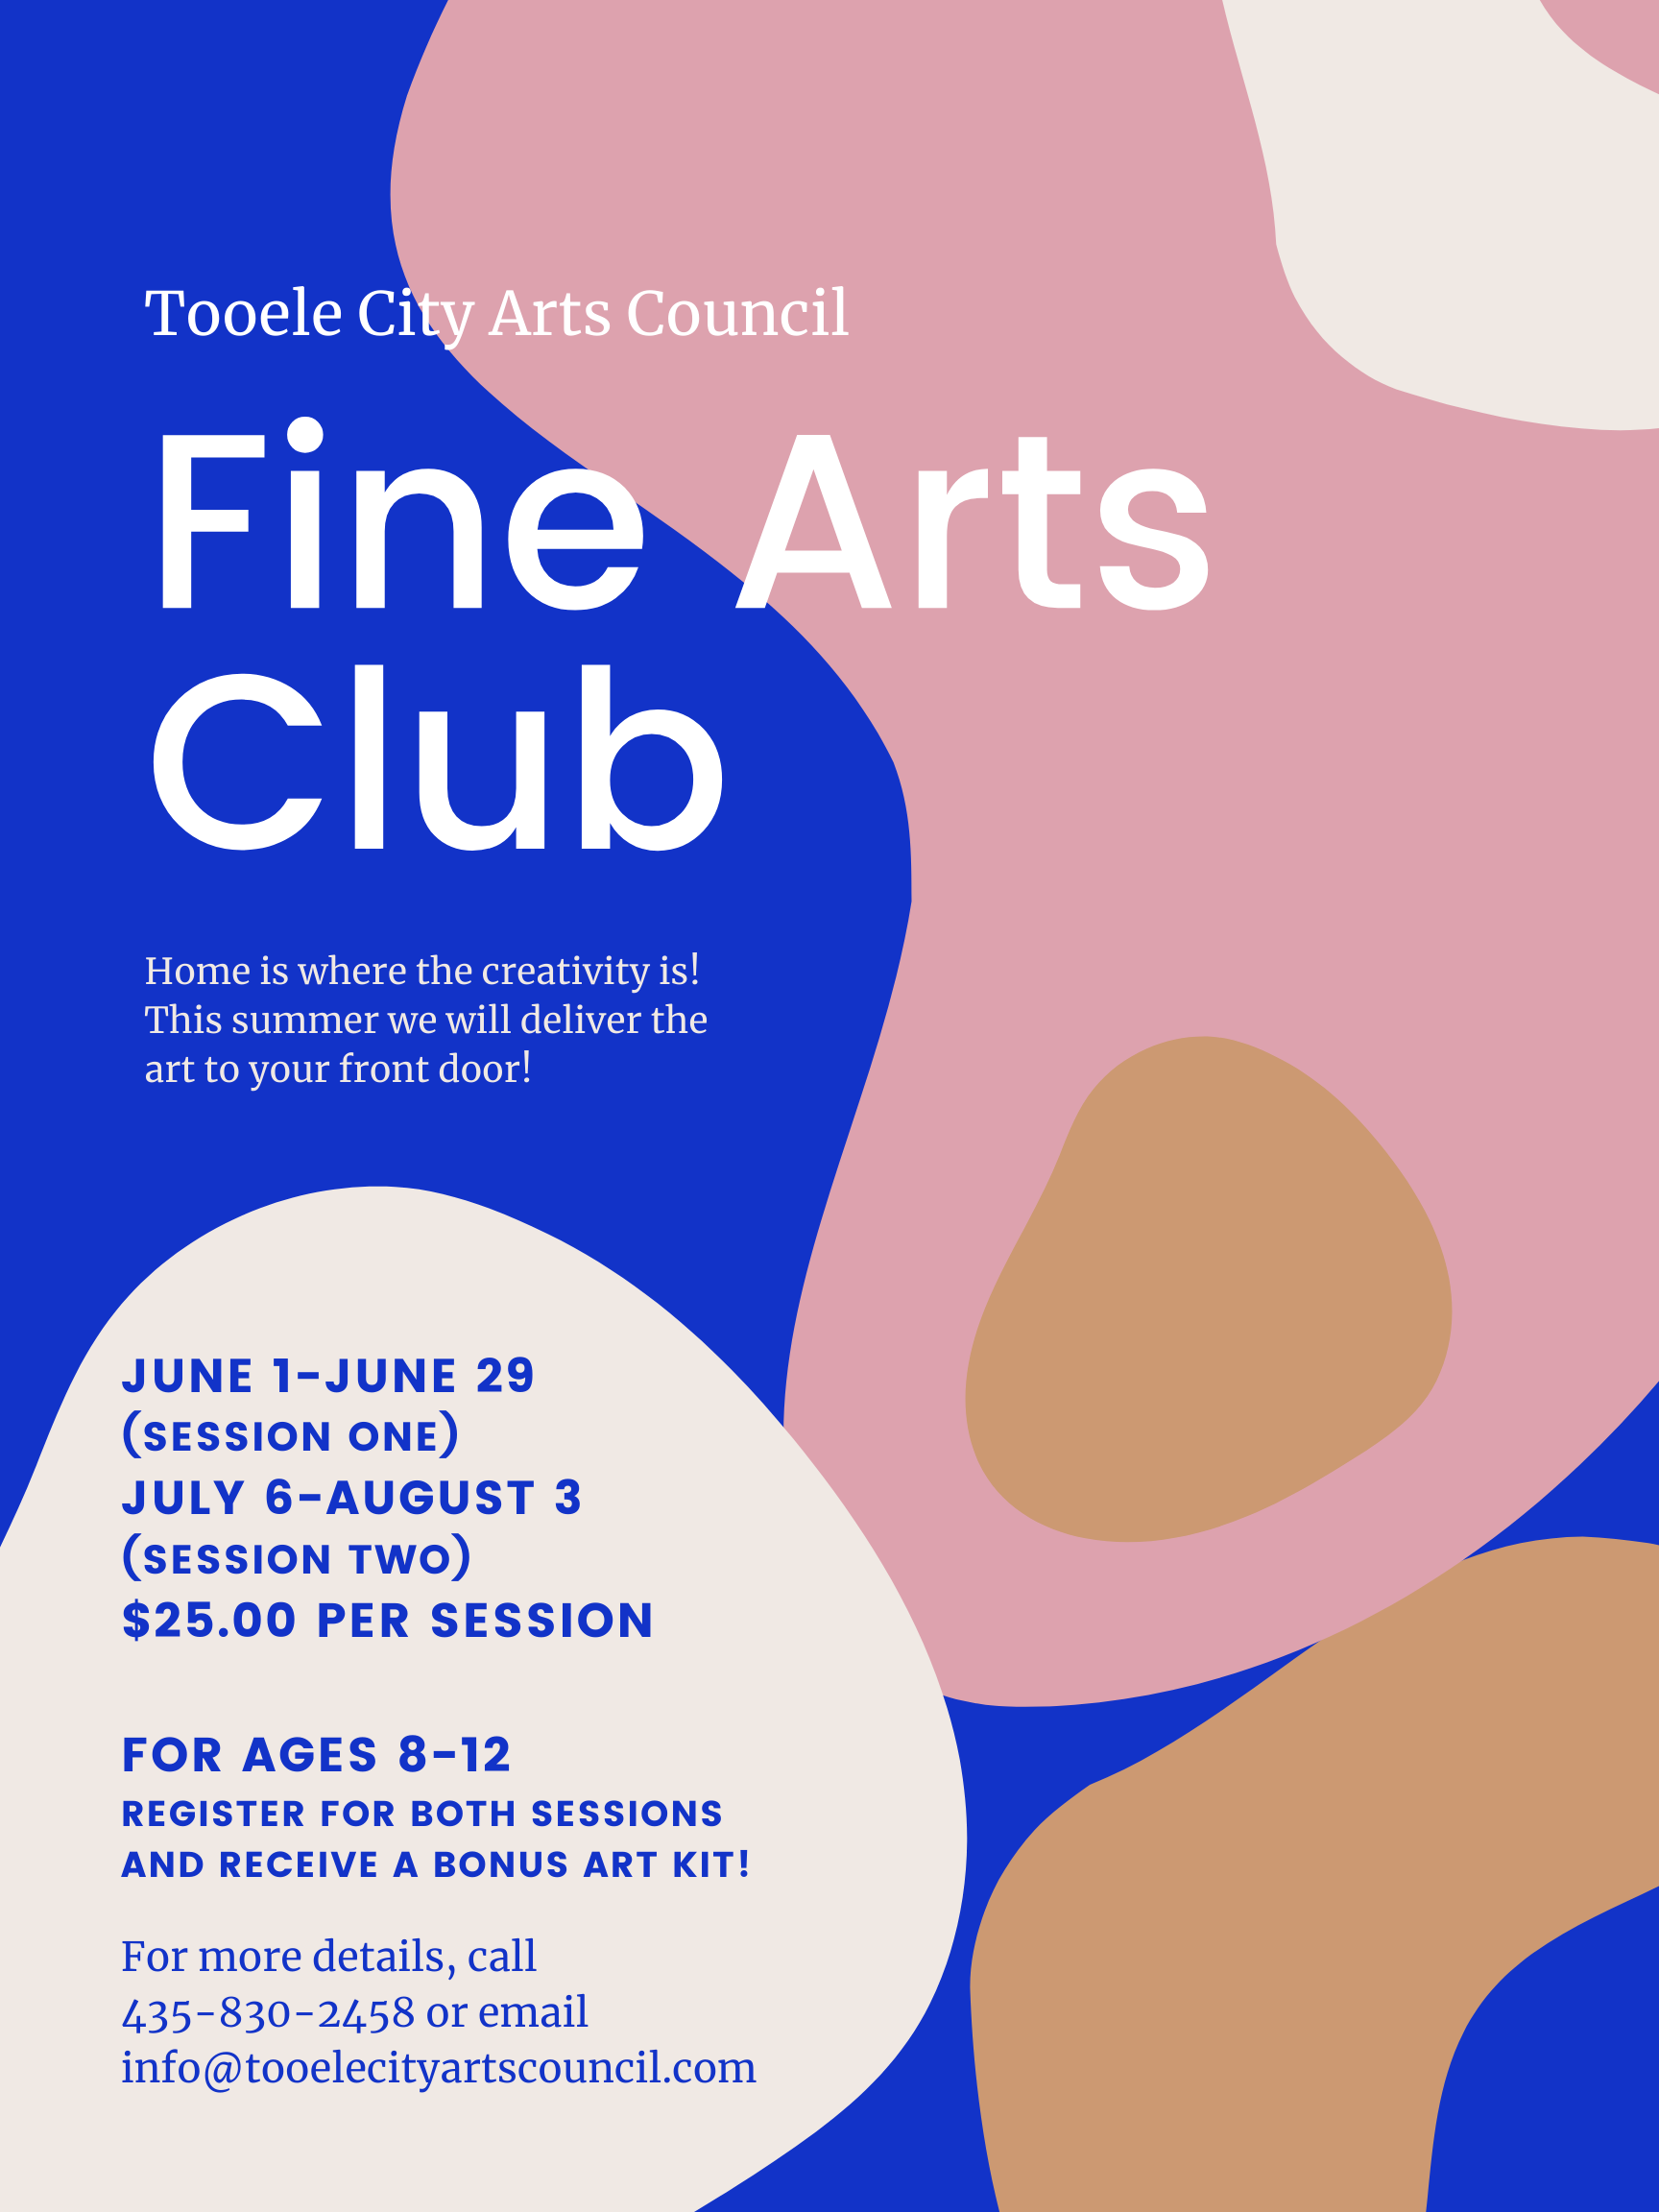 Fine Art Club - Summer 2020 (June Session) @ See details | Tooele | Utah | United States